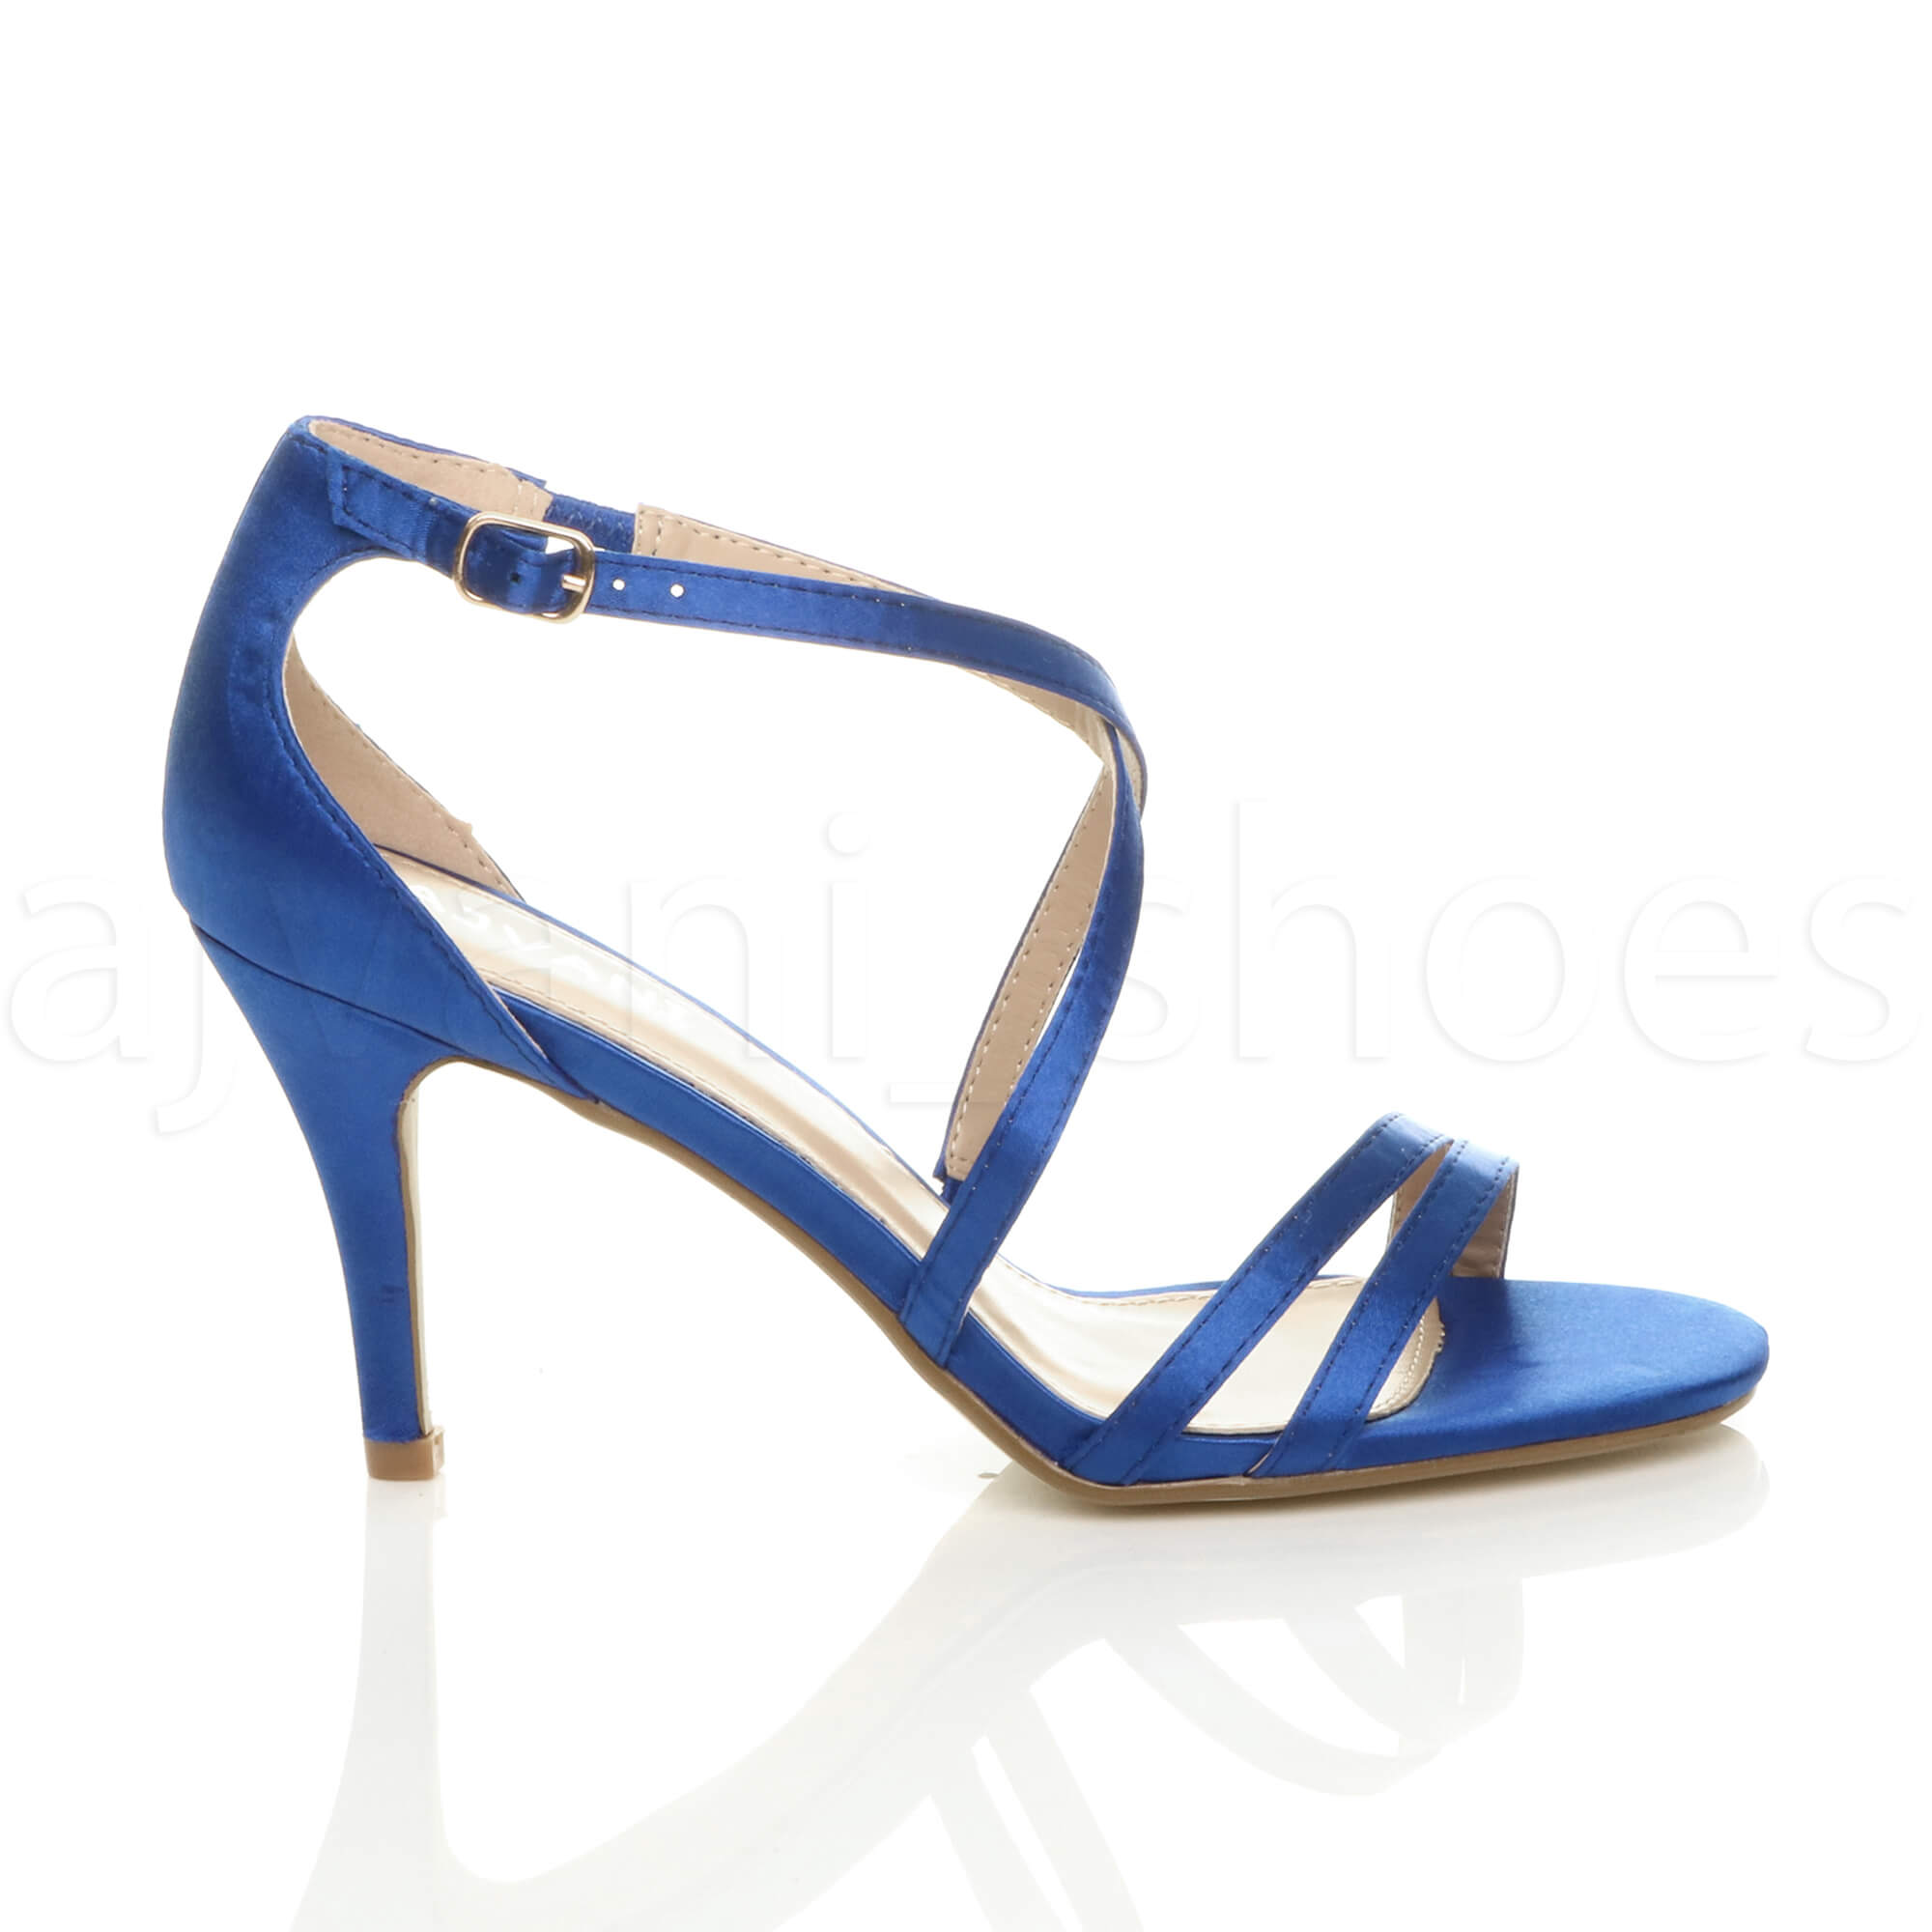 WOMENS-LADIES-MID-HIGH-HEEL-STRAPPY-CROSSOVER-WEDDING-PROM-SANDALS-SHOES-SIZE thumbnail 101